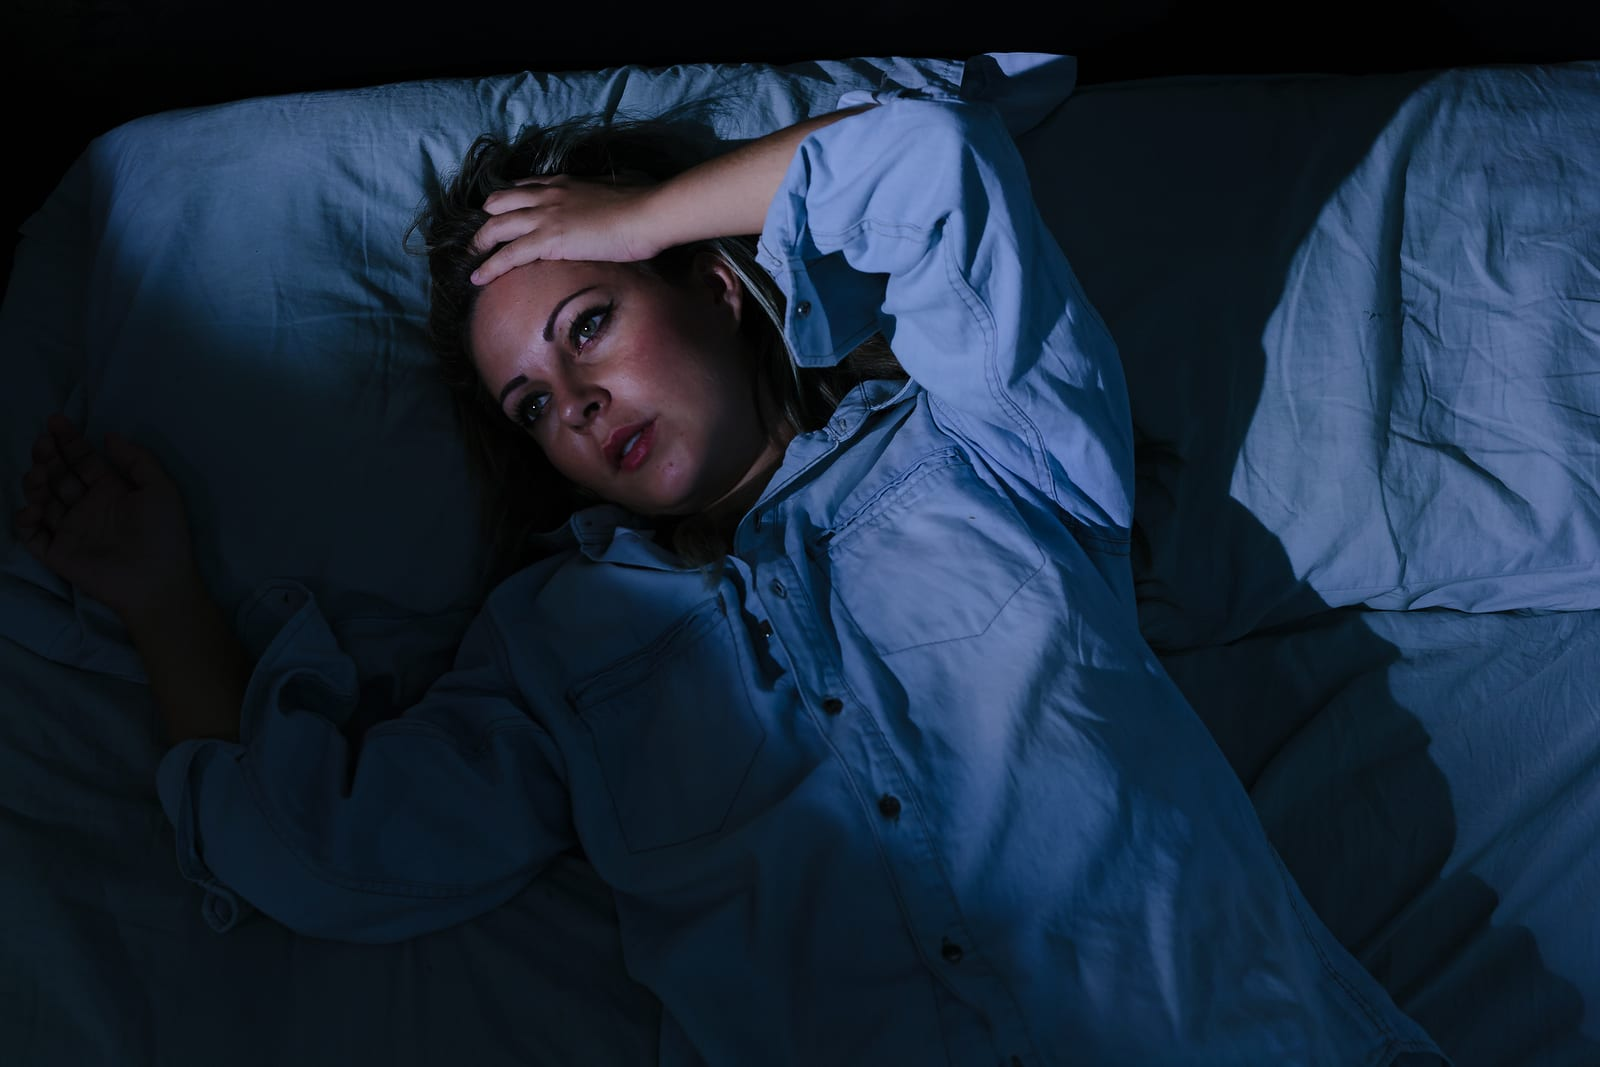 Sleep disorder insomnia. Young blonde woman lying on the bed awake